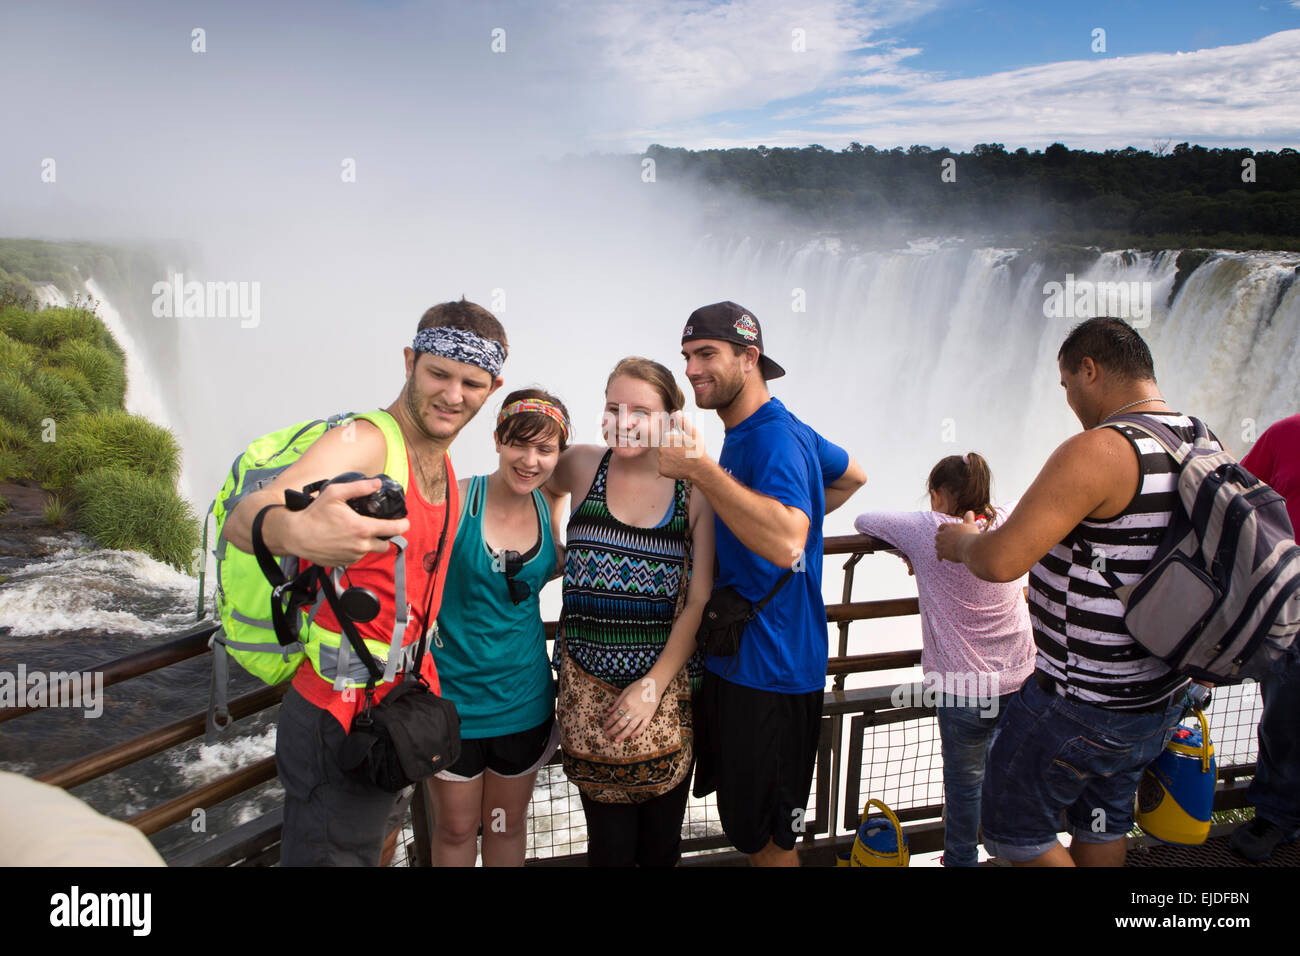 Argentina, Iguazu Falls National Park, tourists taking selfie at Garganta el Diablo waterfall viewpoint - Stock Image